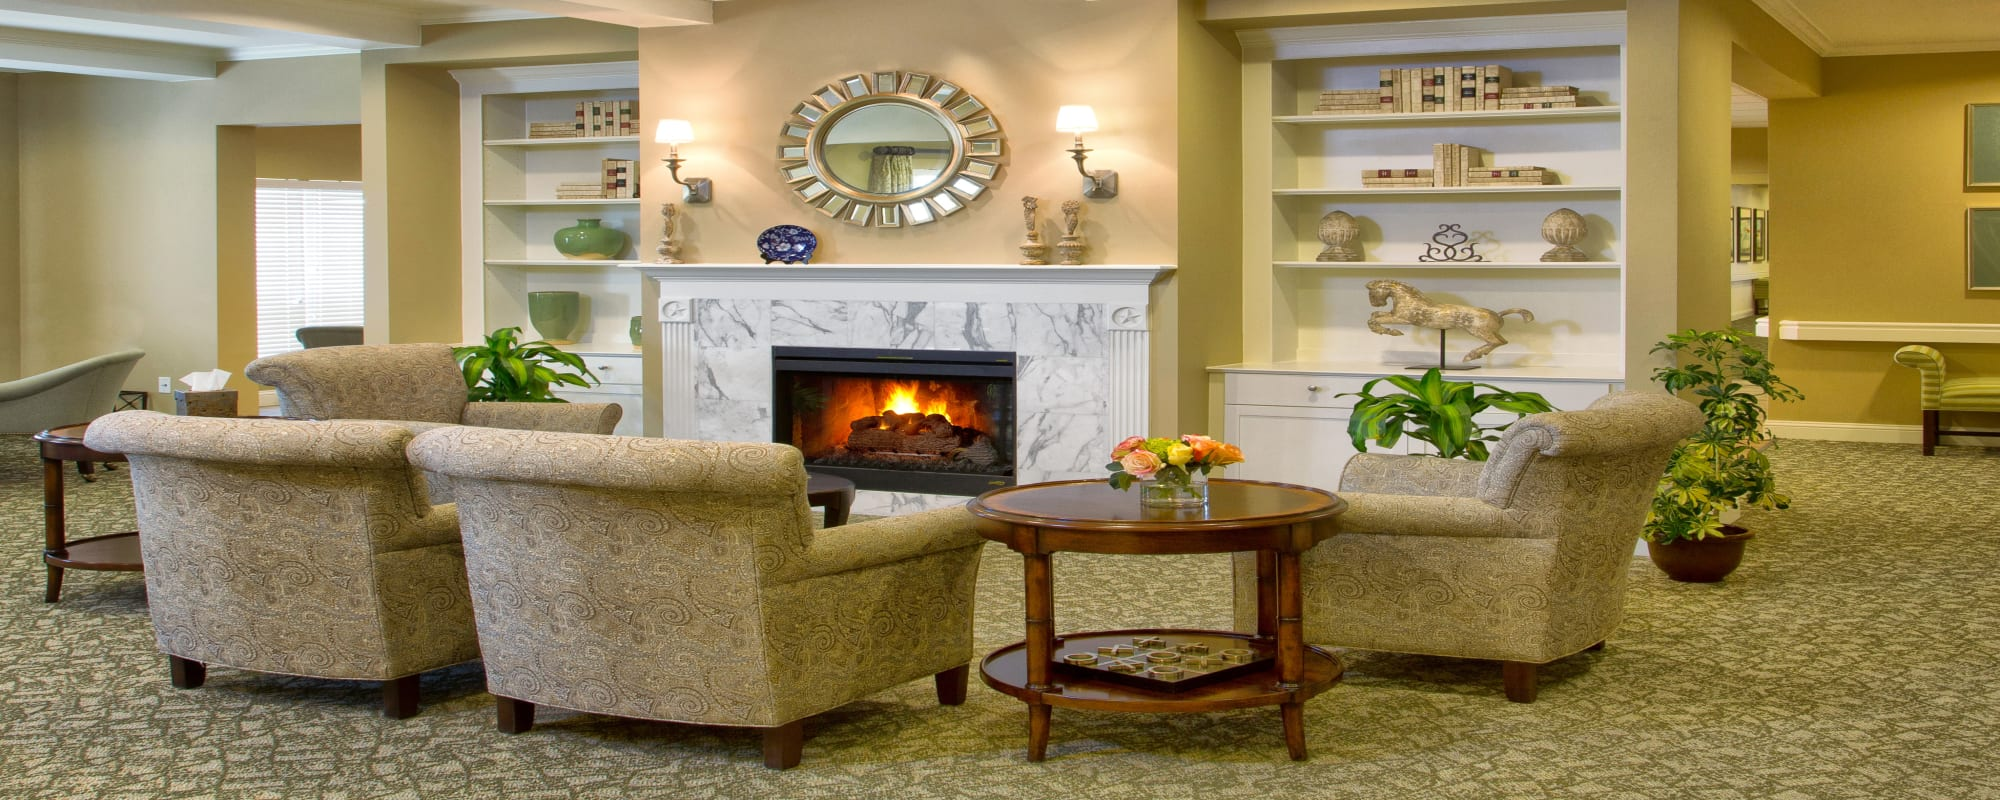 Senior Living Community in Houston, TX - The Village of the Heights